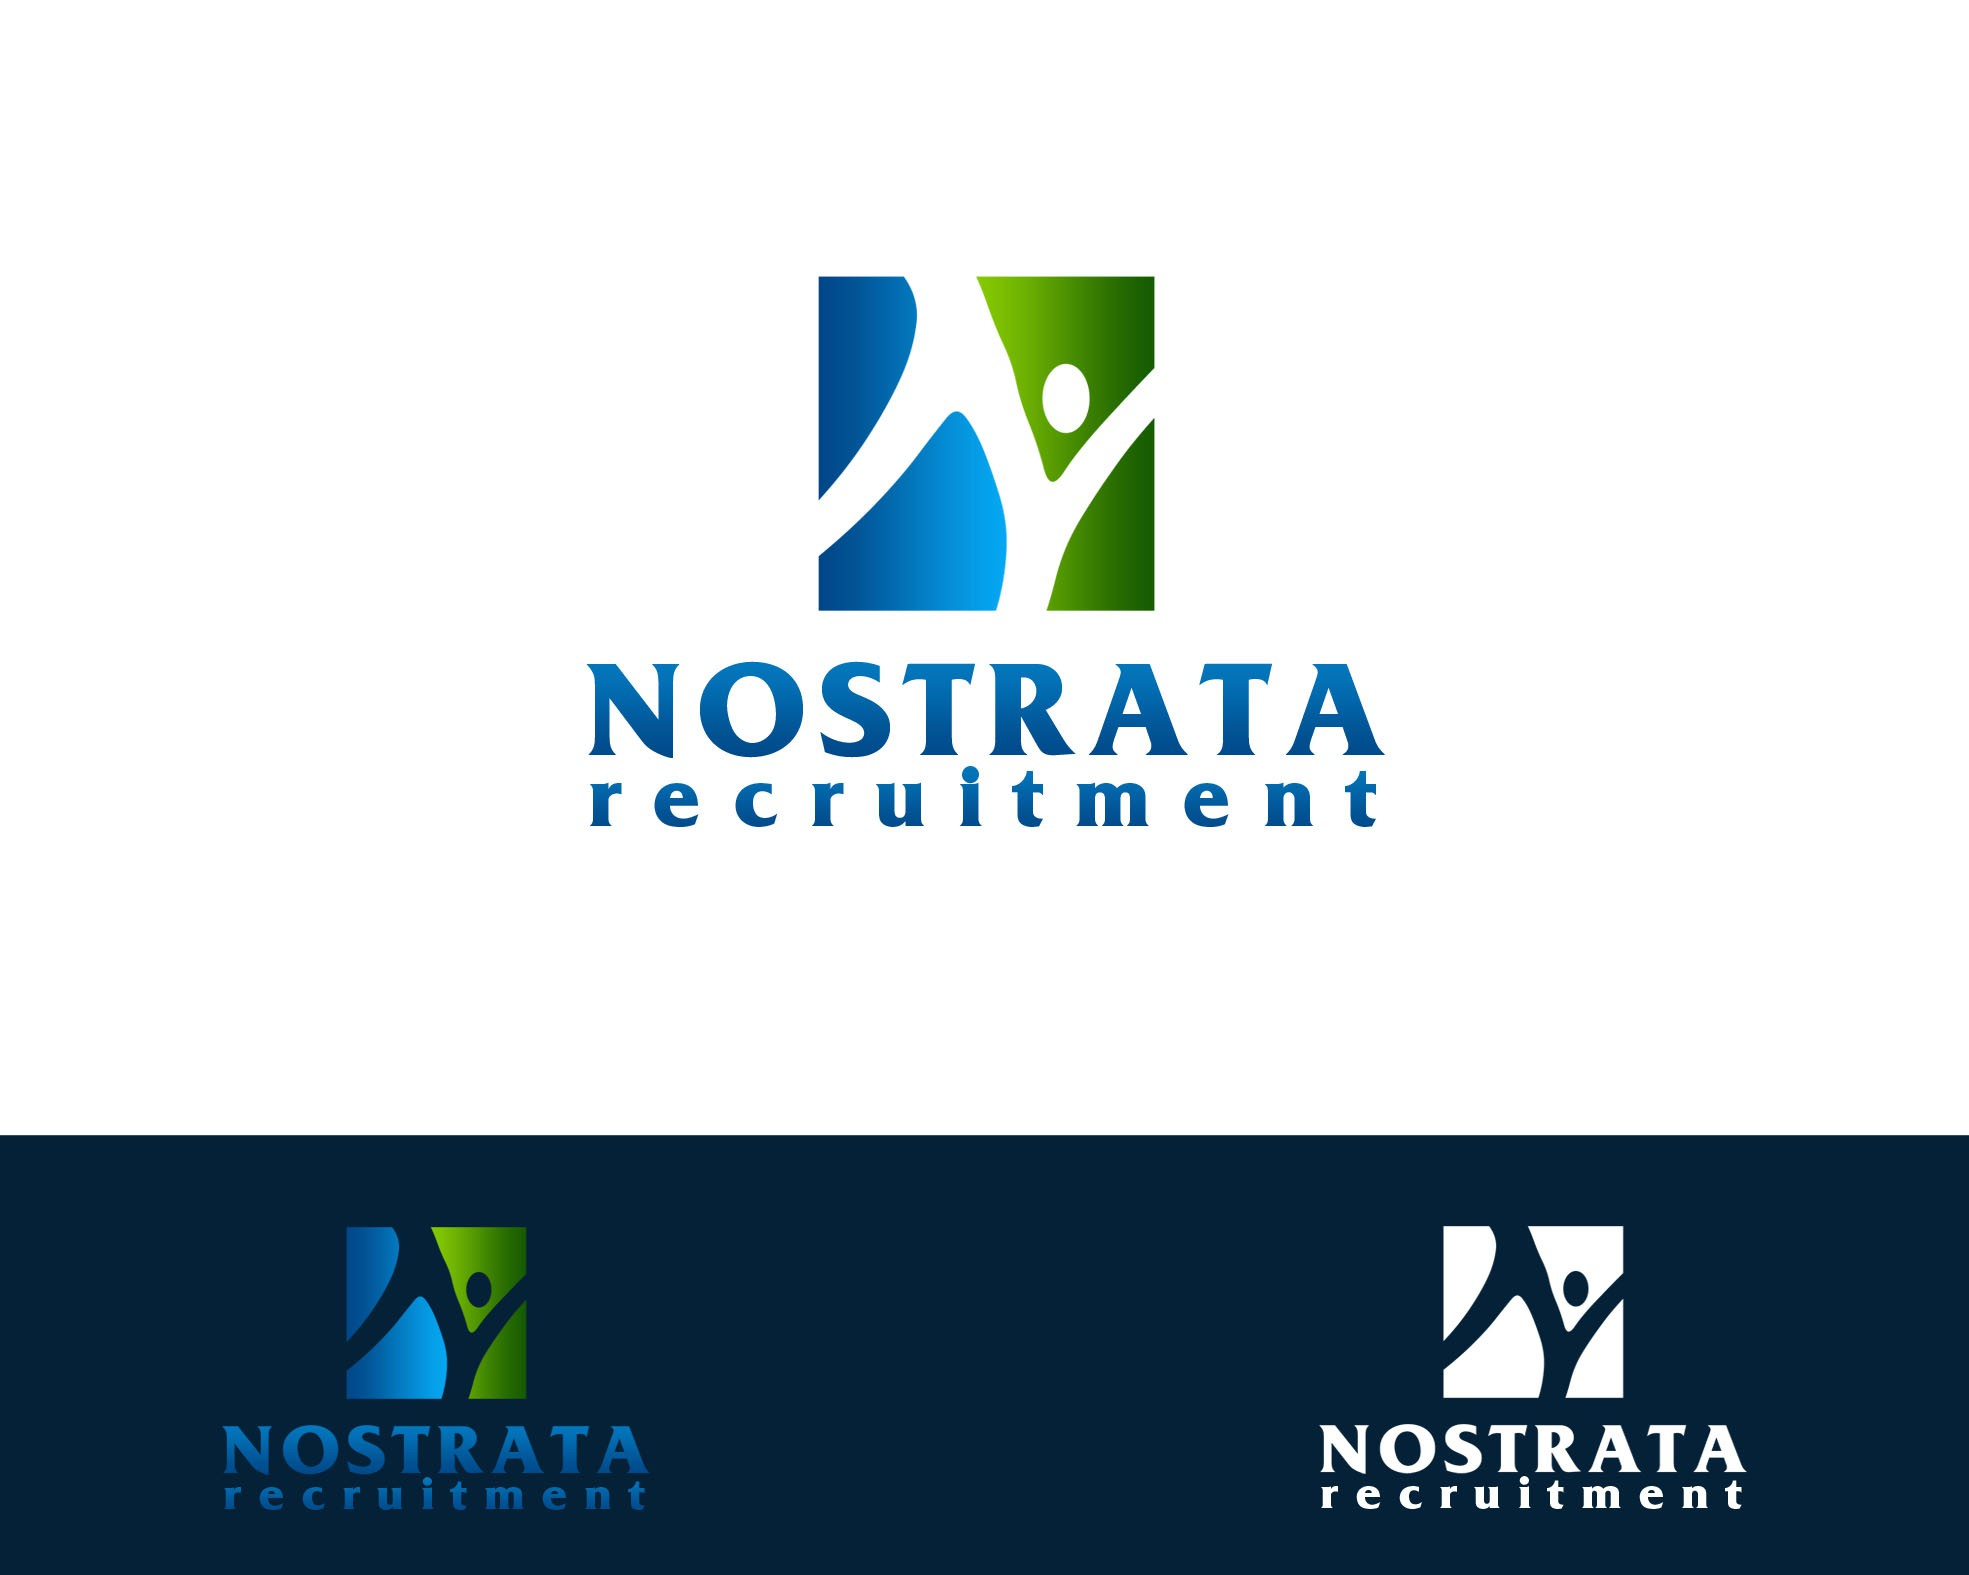 New logo wanted for Nostrata Recruitment Services